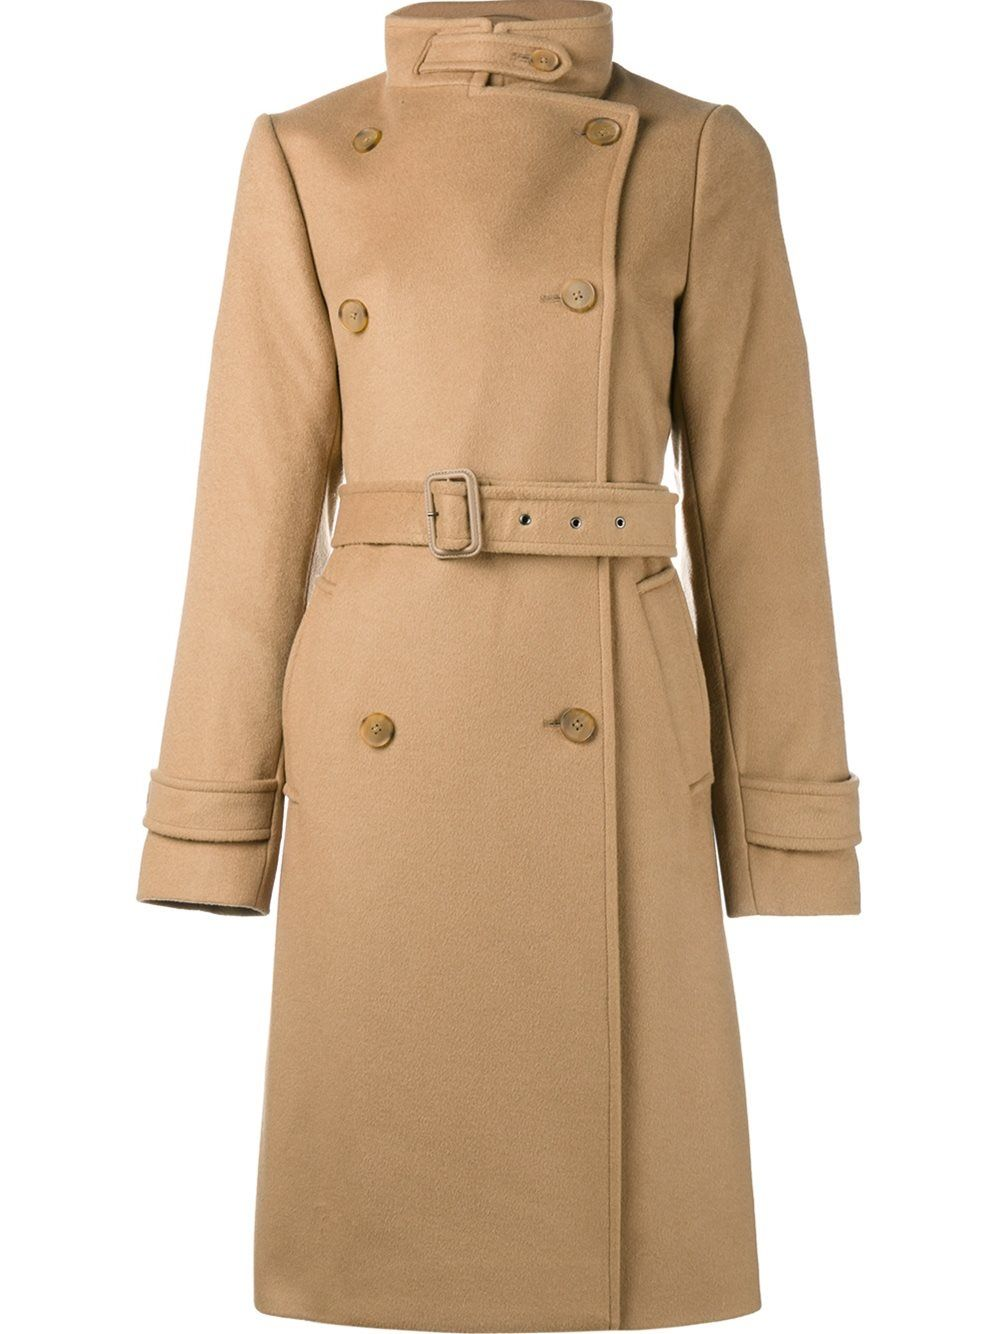 ef6702a076bd3 Camel brown cashmere-wool blend belted trench coat from Vince featuring  notched lapels